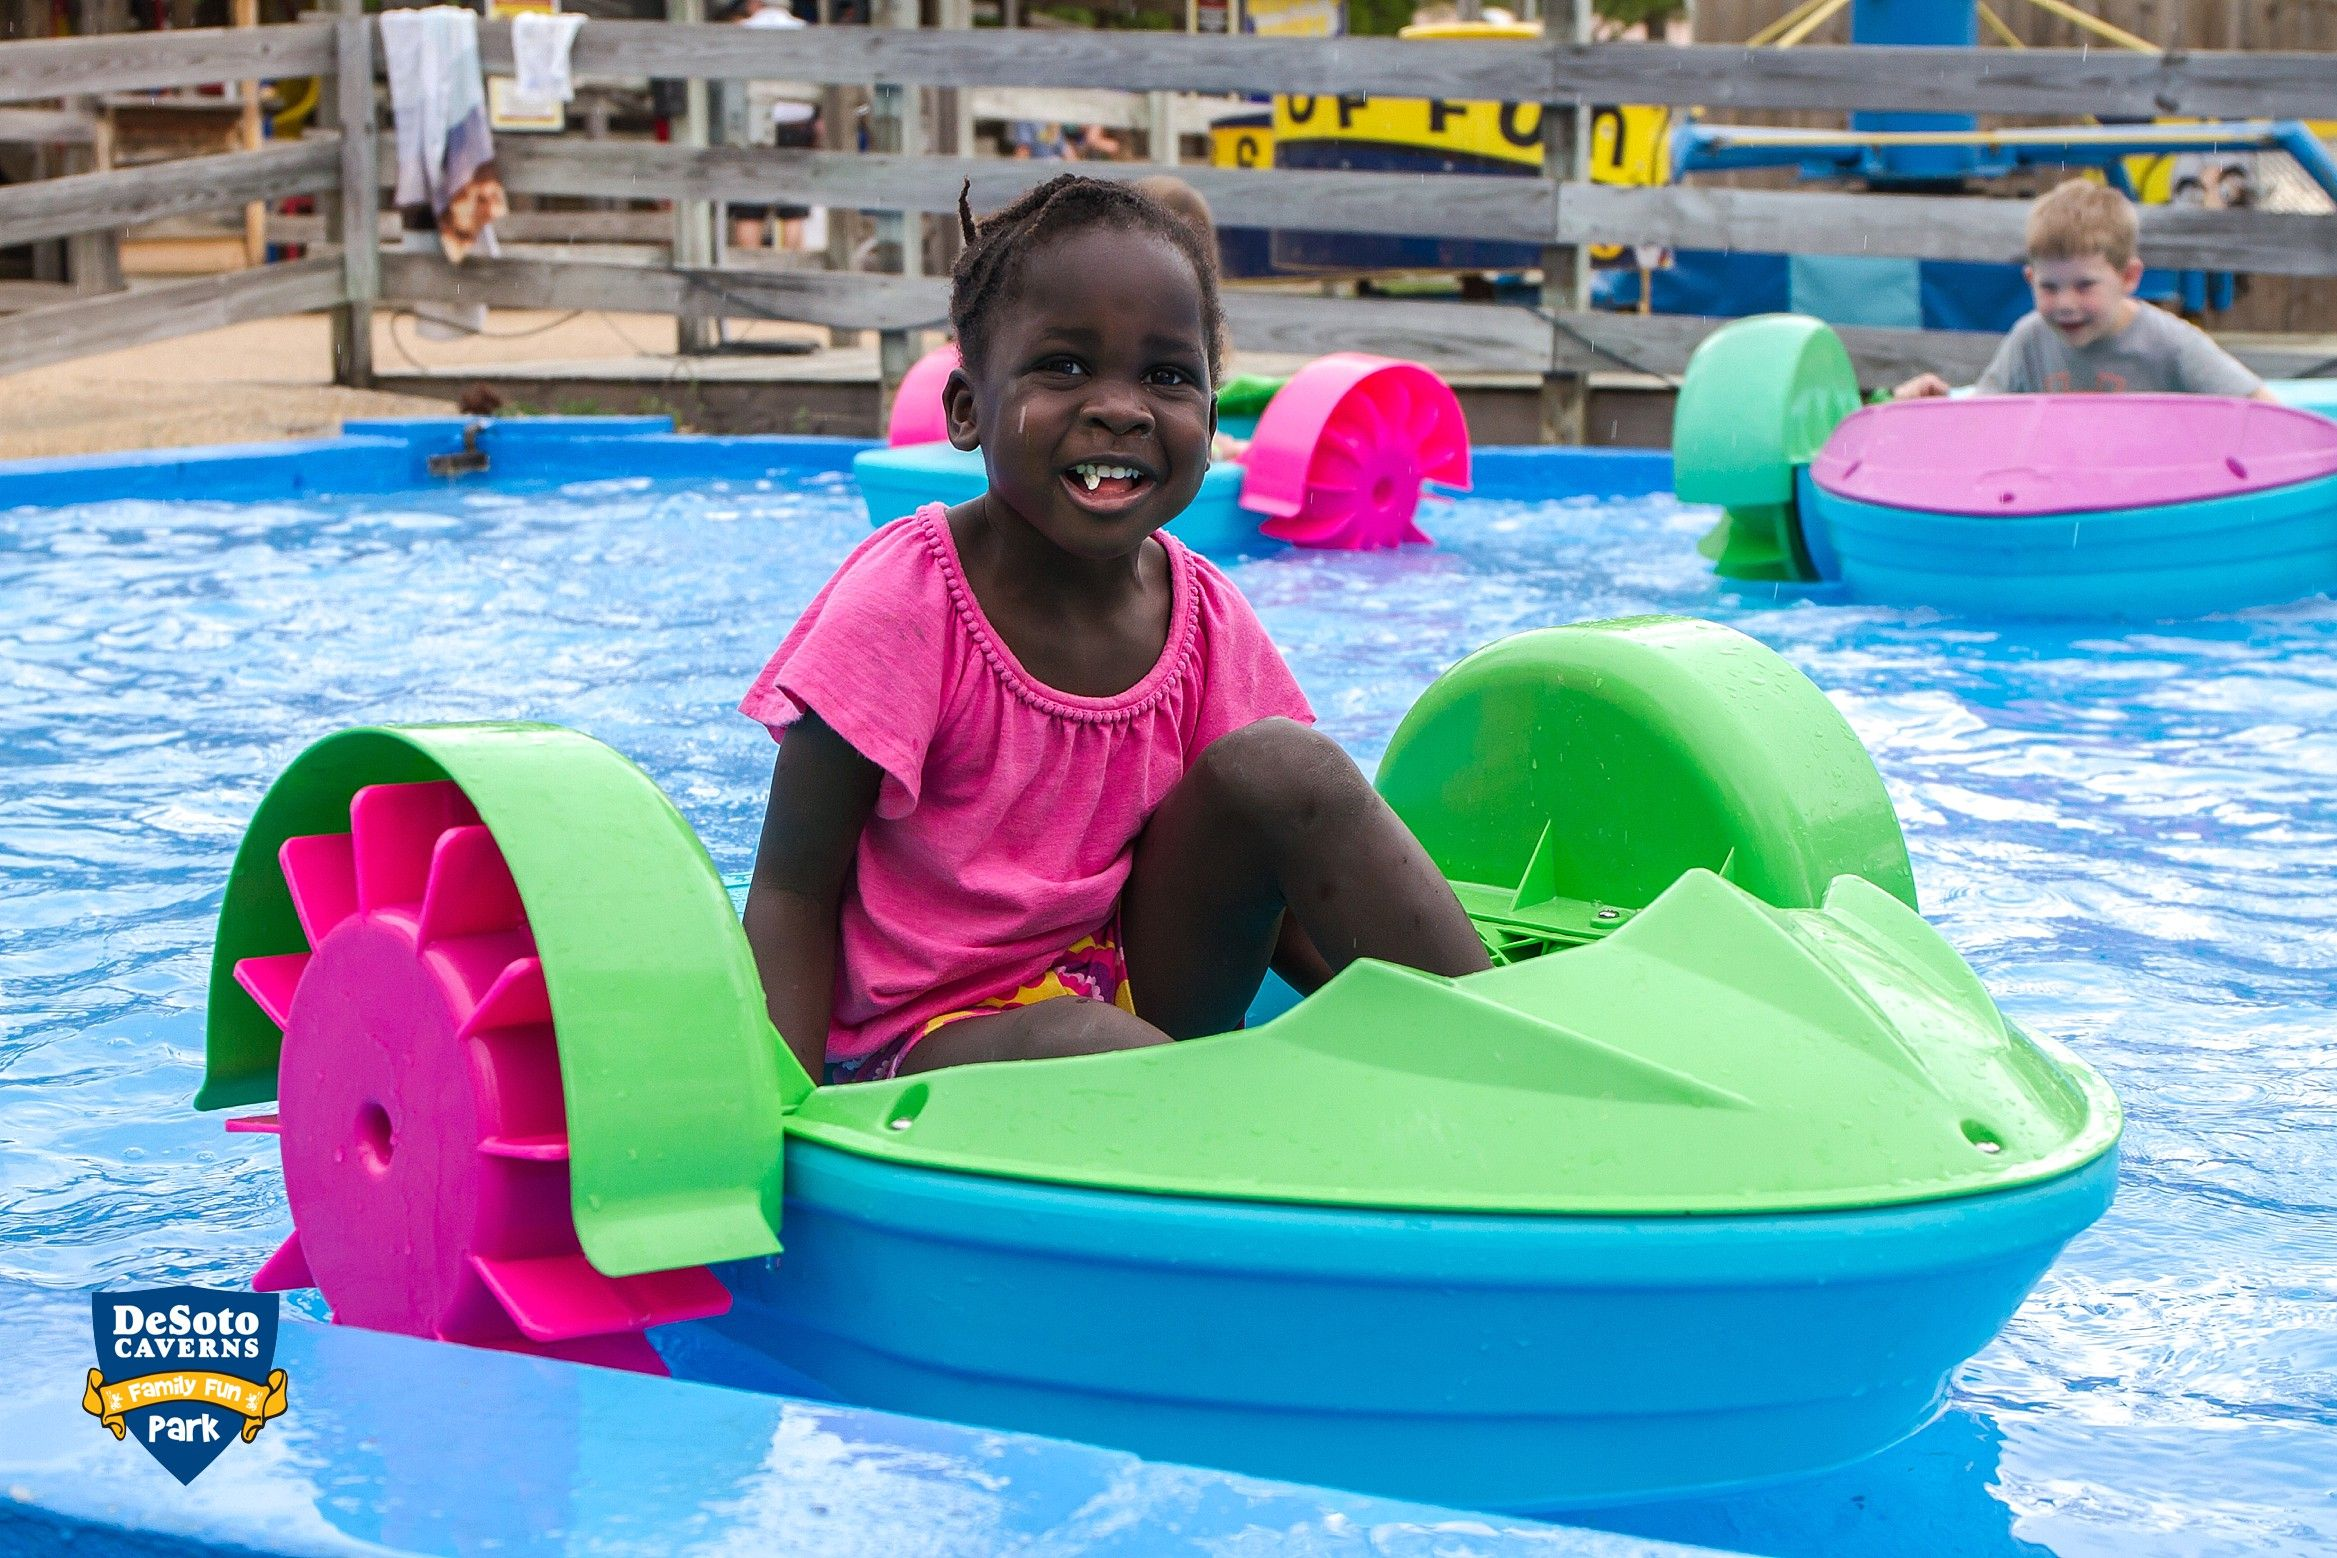 Enjoy The Warm Days In Happys Paddle Boats Fun For Kids Of All